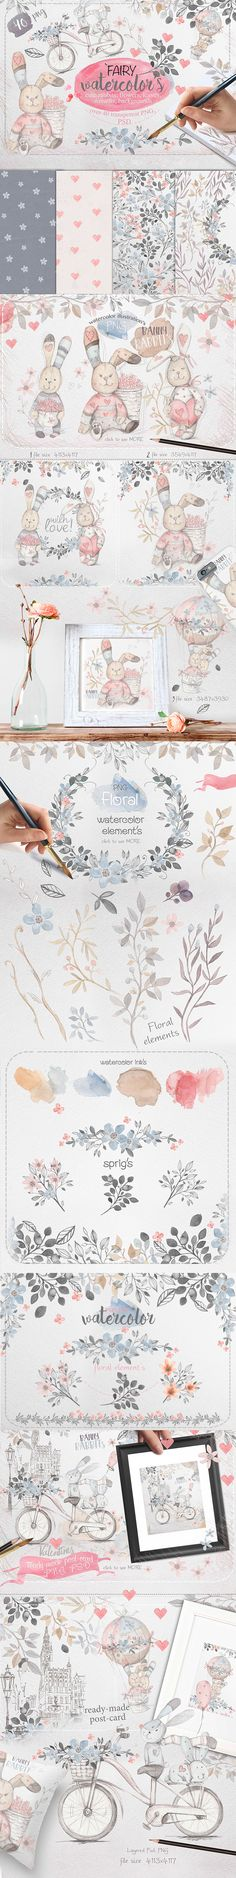 This is art collection with the ​watercolor illustration of cute rabbit's, floral branches​, sprigs pattern's for your any design project. WHAT YOU GET: 40 PNG Watercolor Design, Watercolor Illustration, Graphic Illustration, Design Bundles, Design Projects, Bunny Rabbits, File Size, Graphic Design, Branches